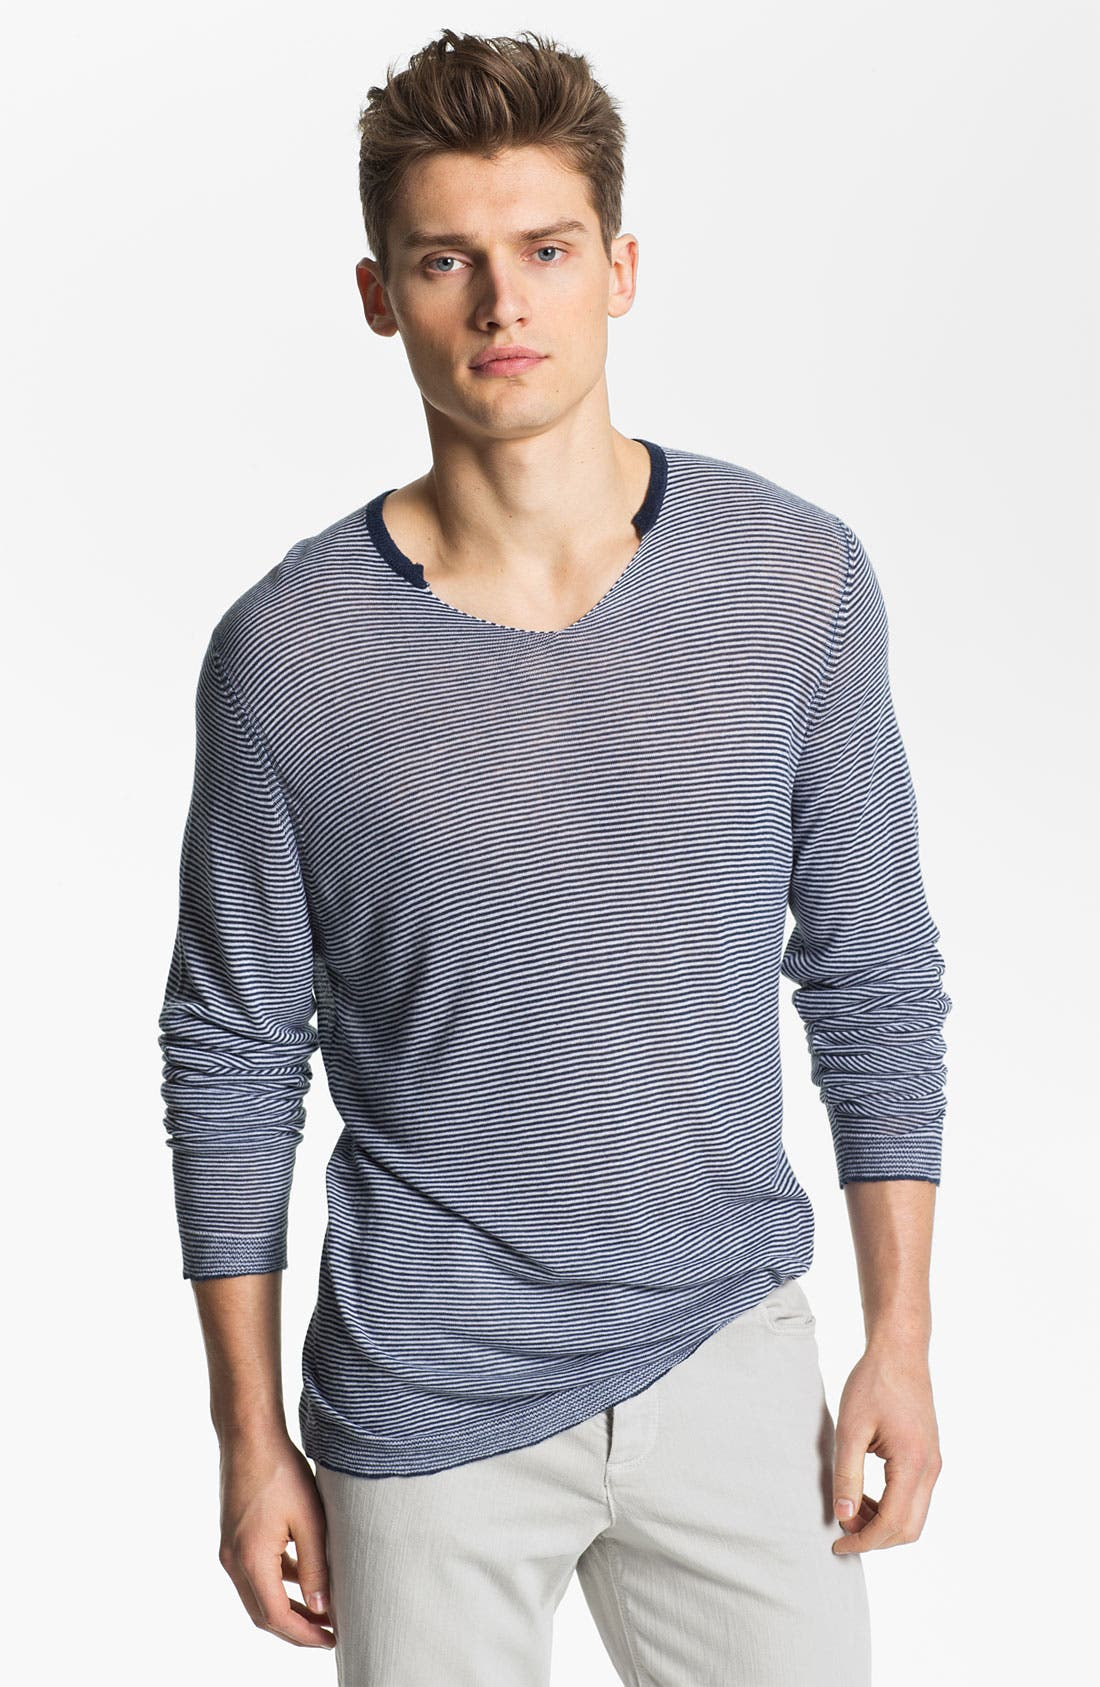 Alternate Image 1 Selected - Zadig & Voltaire Notched Stripe Knit T-Shirt